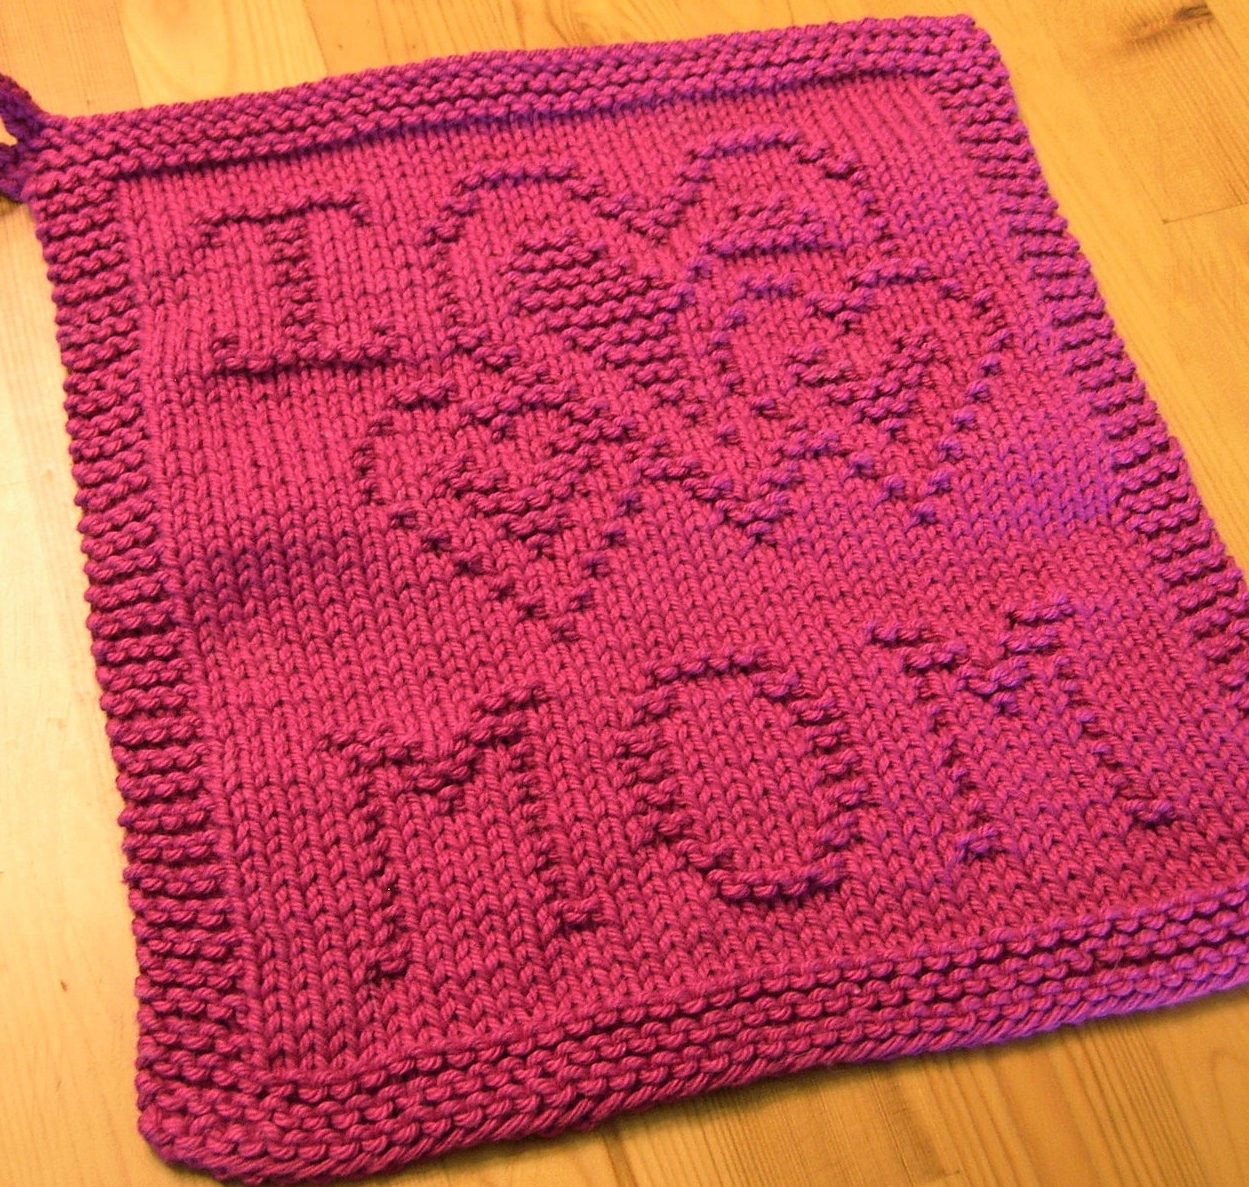 Knitted Dishcloth Patterns Awesome Mother's Day Gift Knitting Patterns Of Brilliant 47 Pics Knitted Dishcloth Patterns